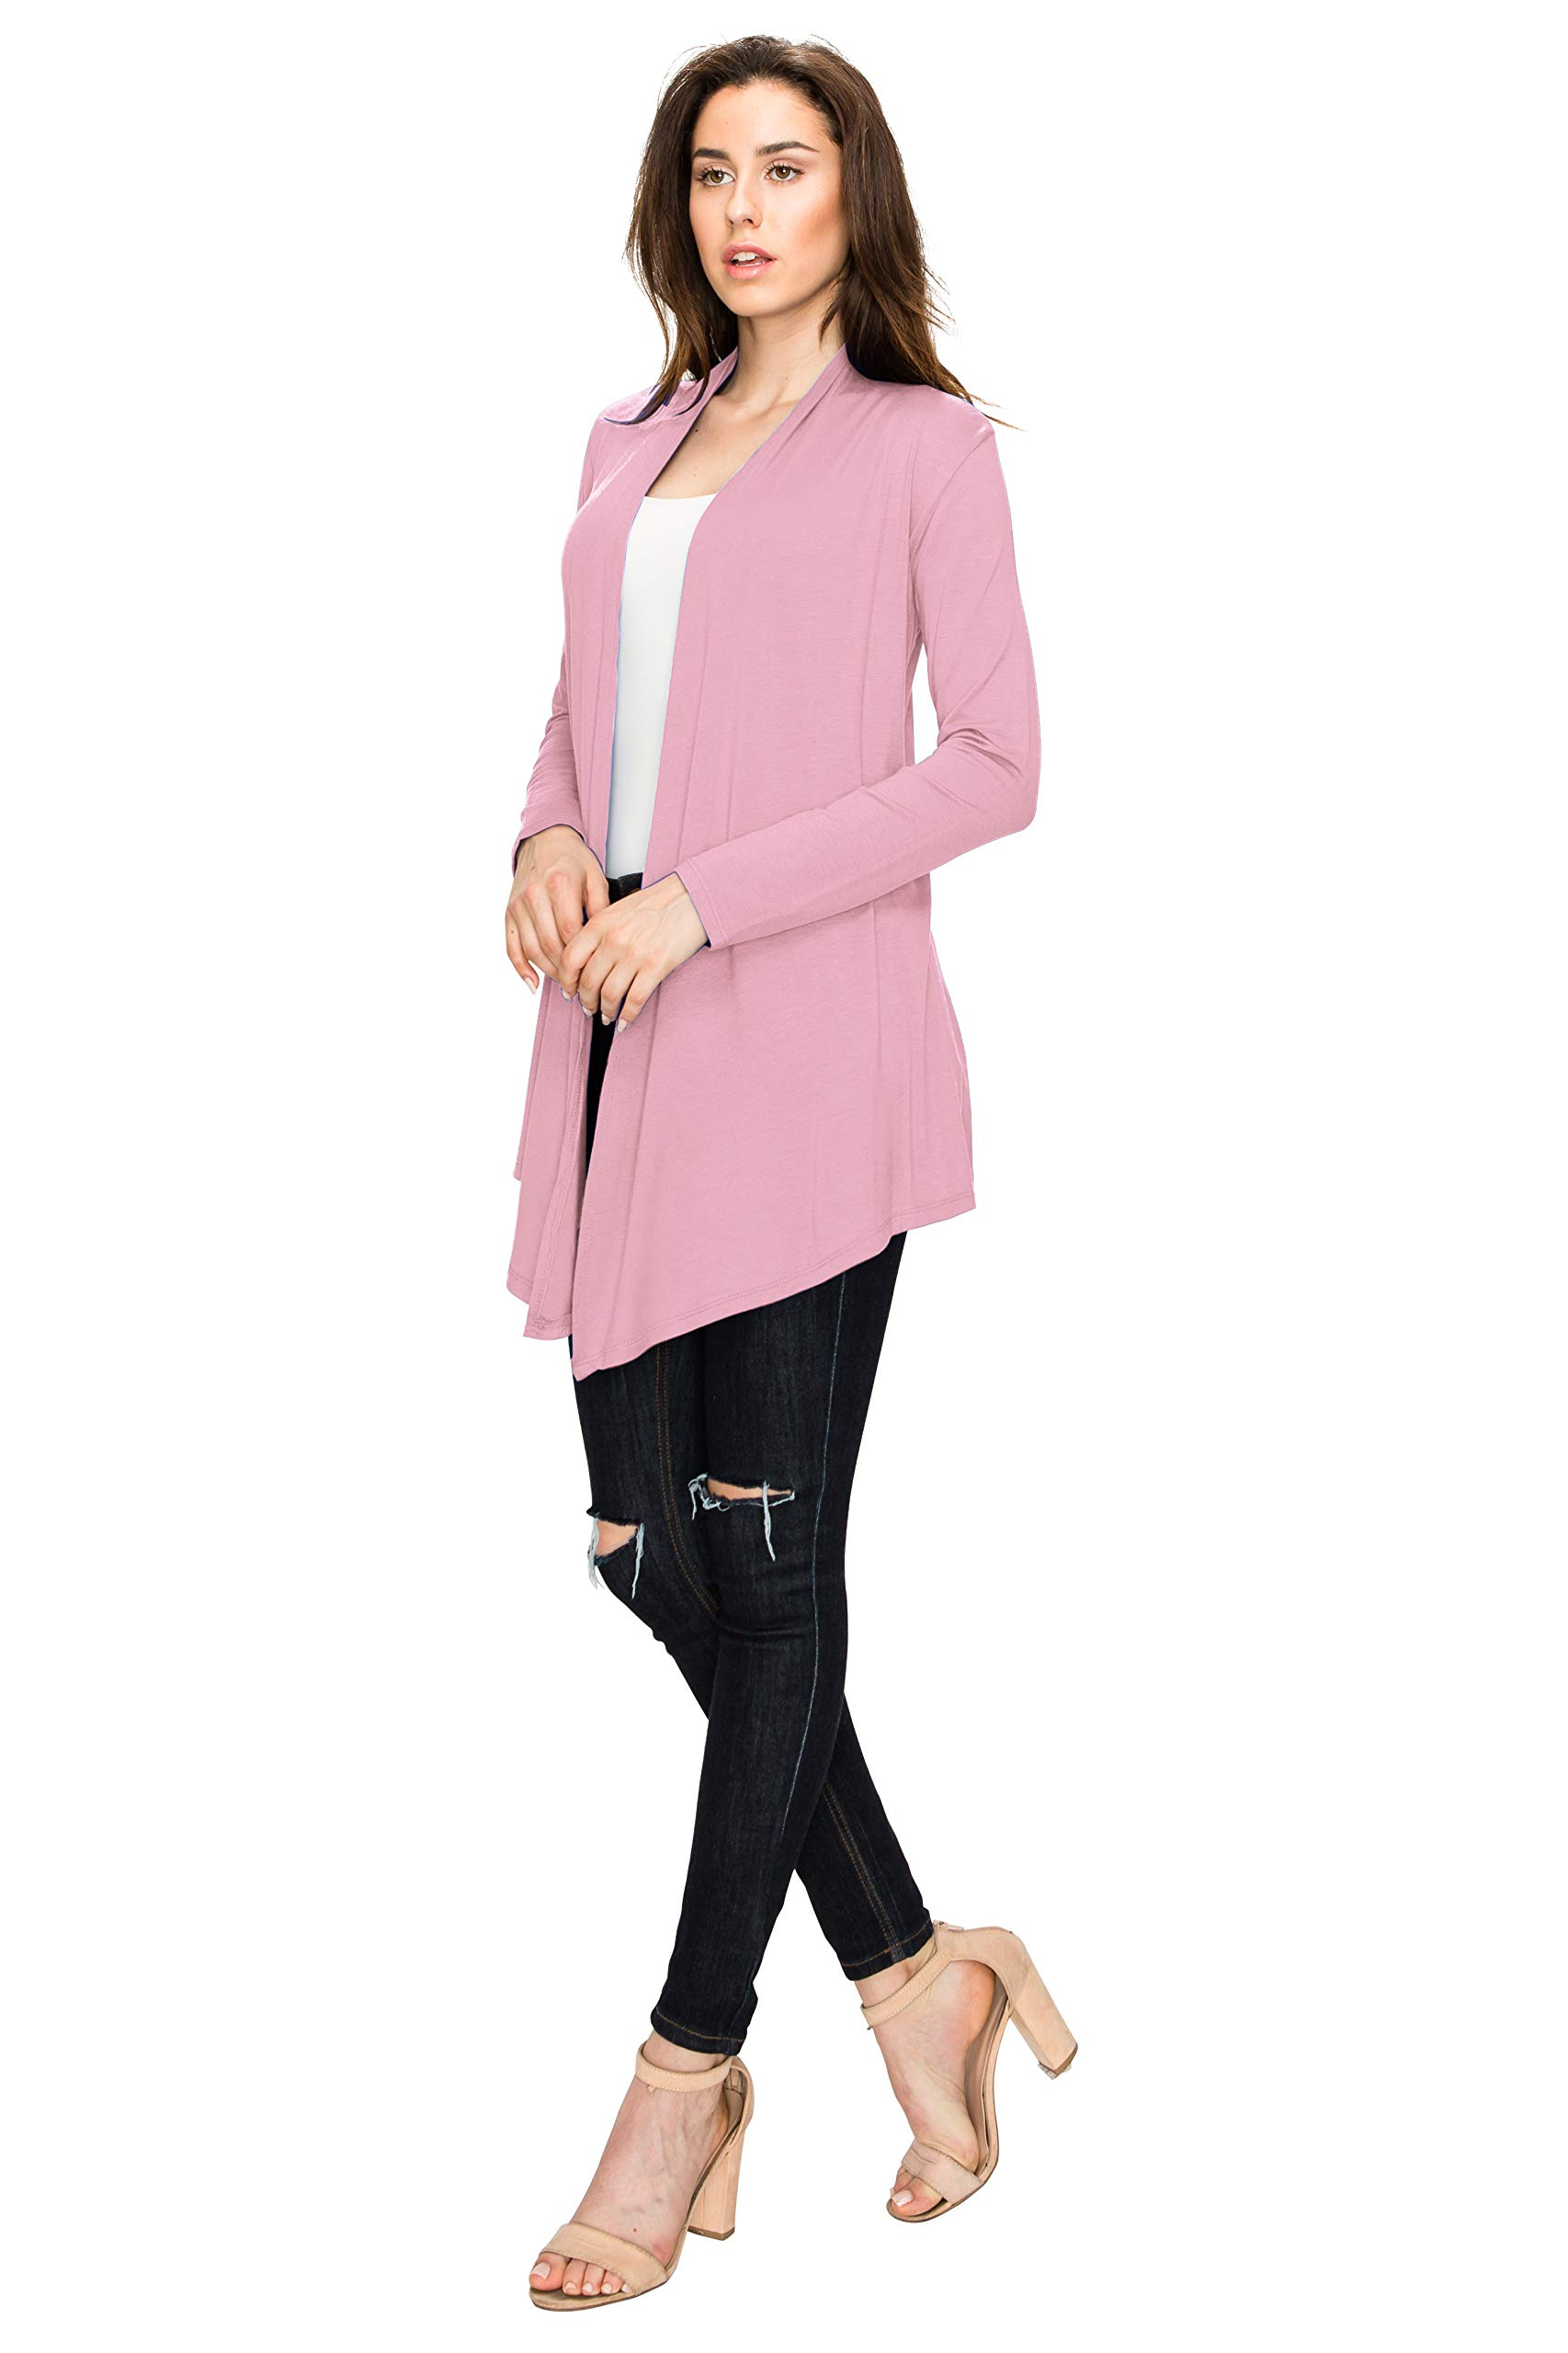 WSK850 Womens Draped Open- Front Cardigan XXL Pink by Lock and Love (Image #3)